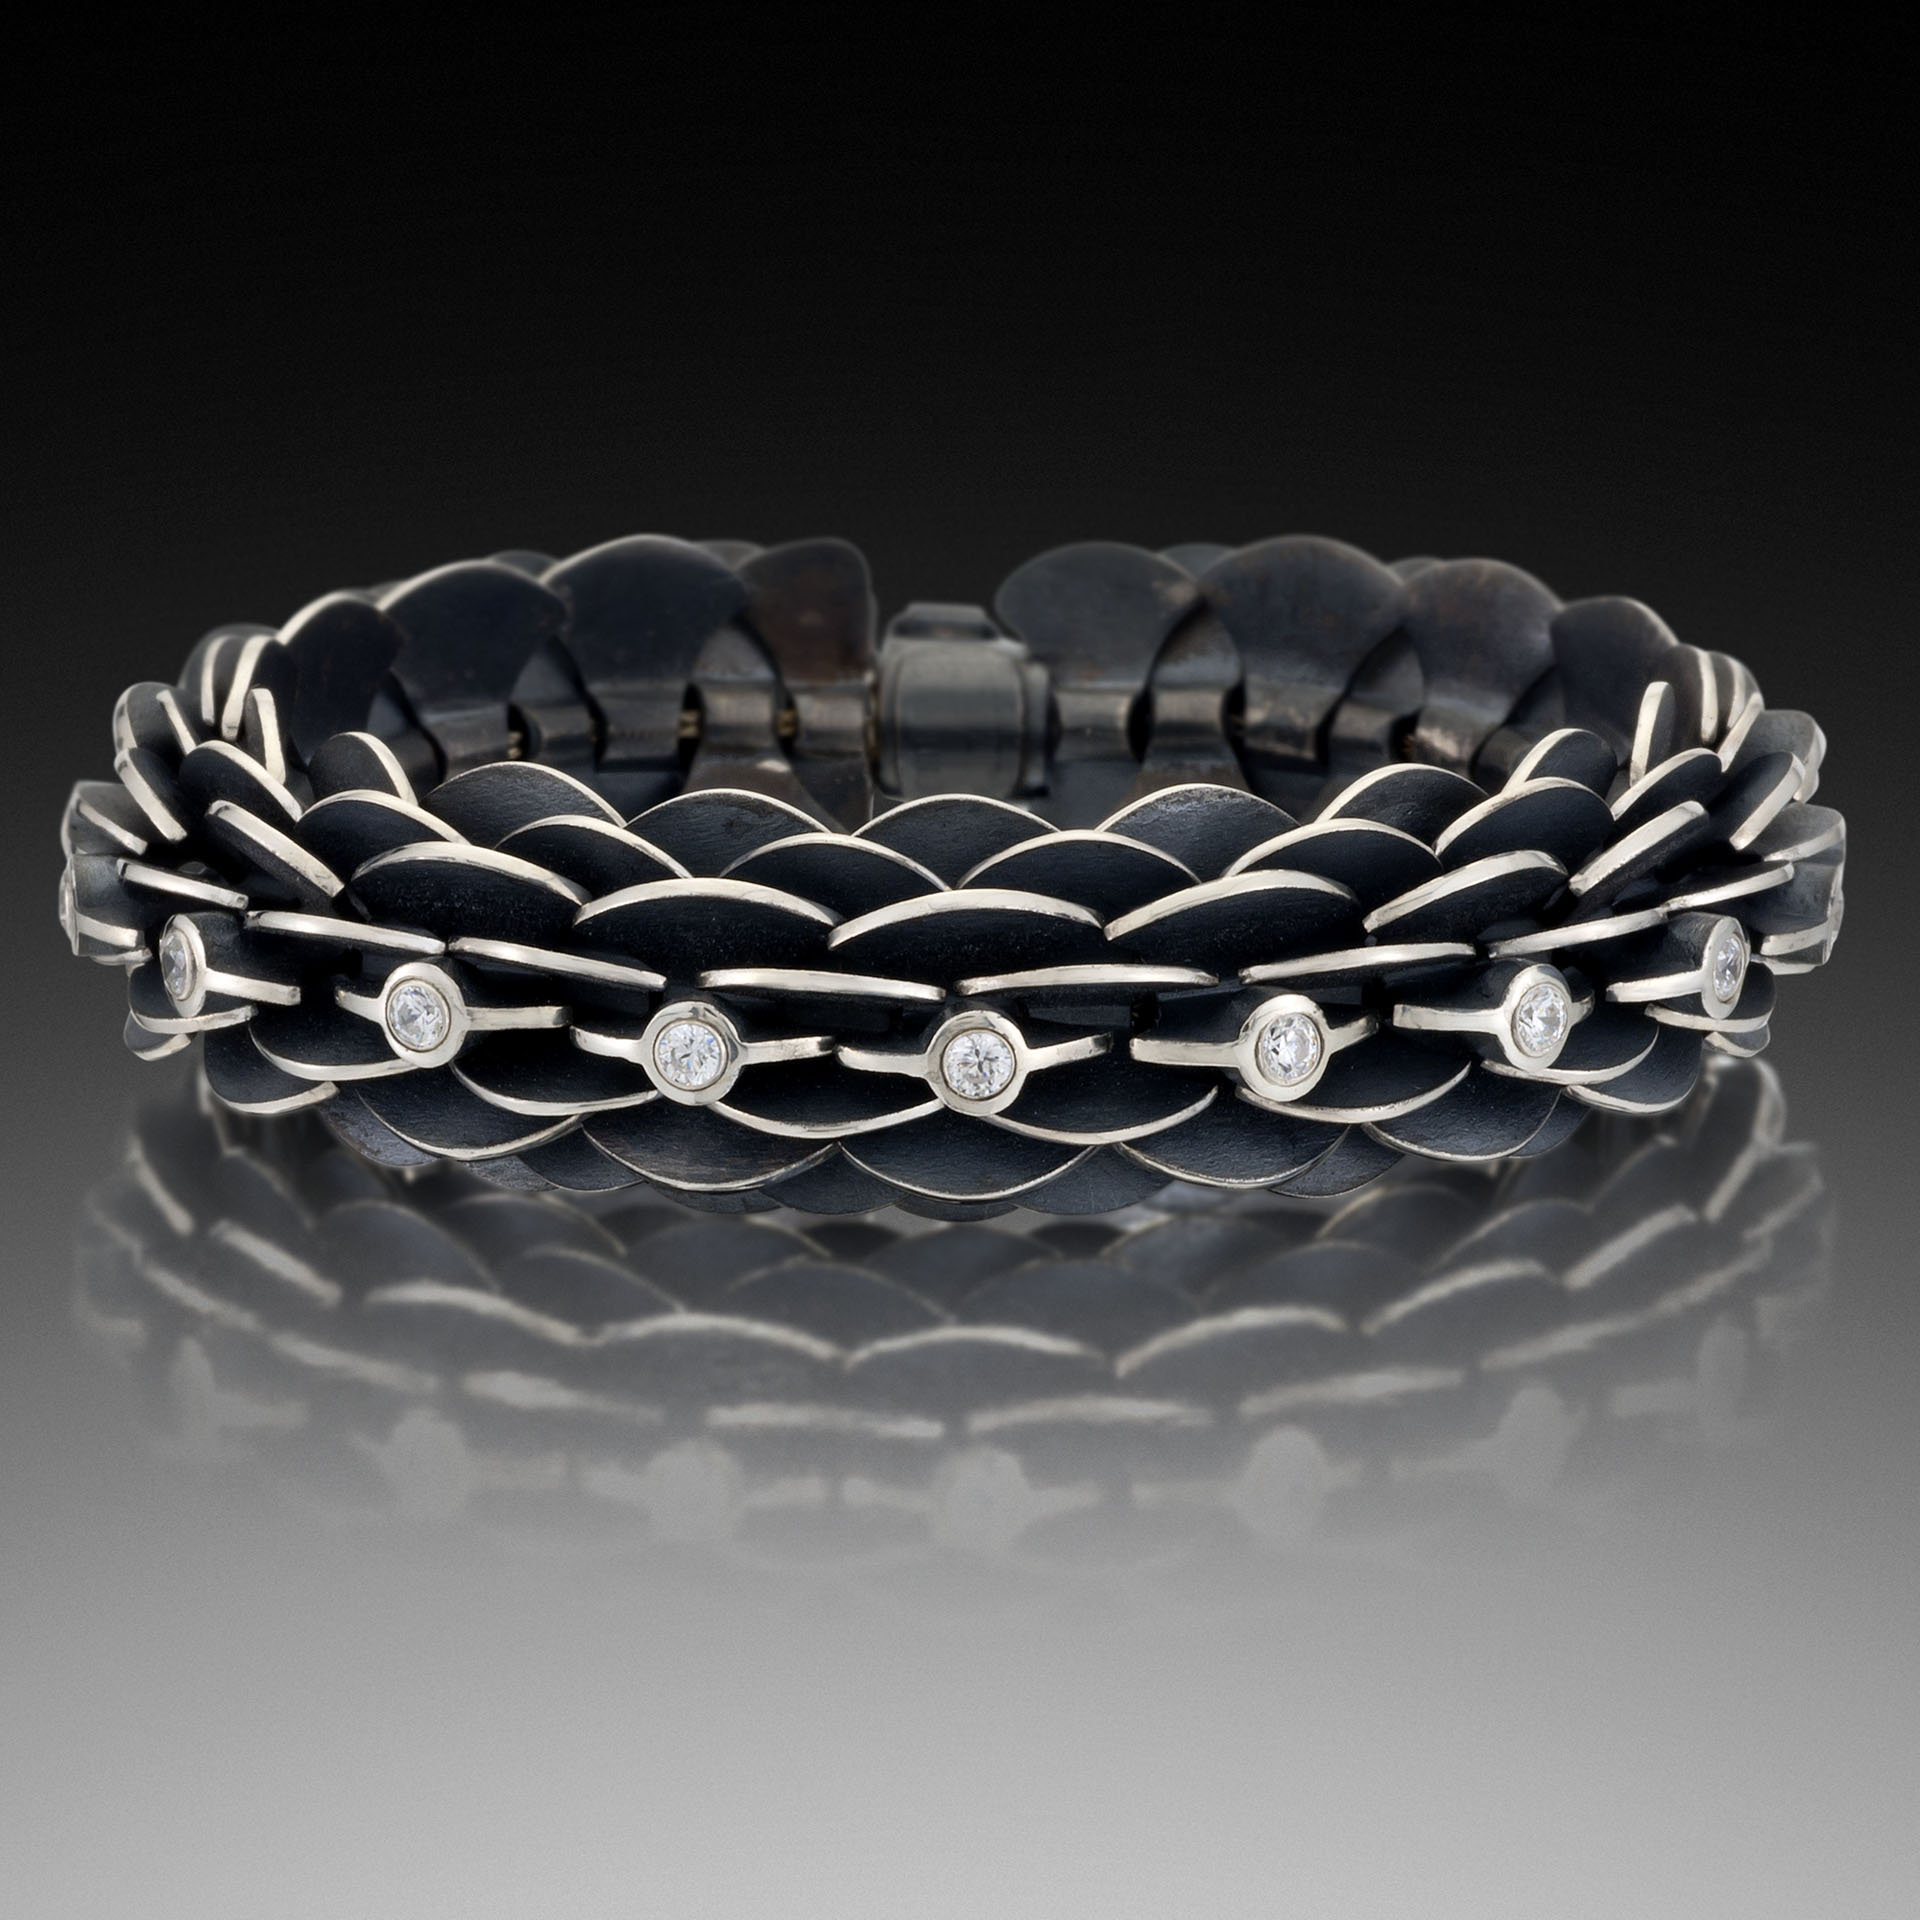 Pangolin Bracelet with Stones by Samantha Freeman (Silver & Stone Bracelet)